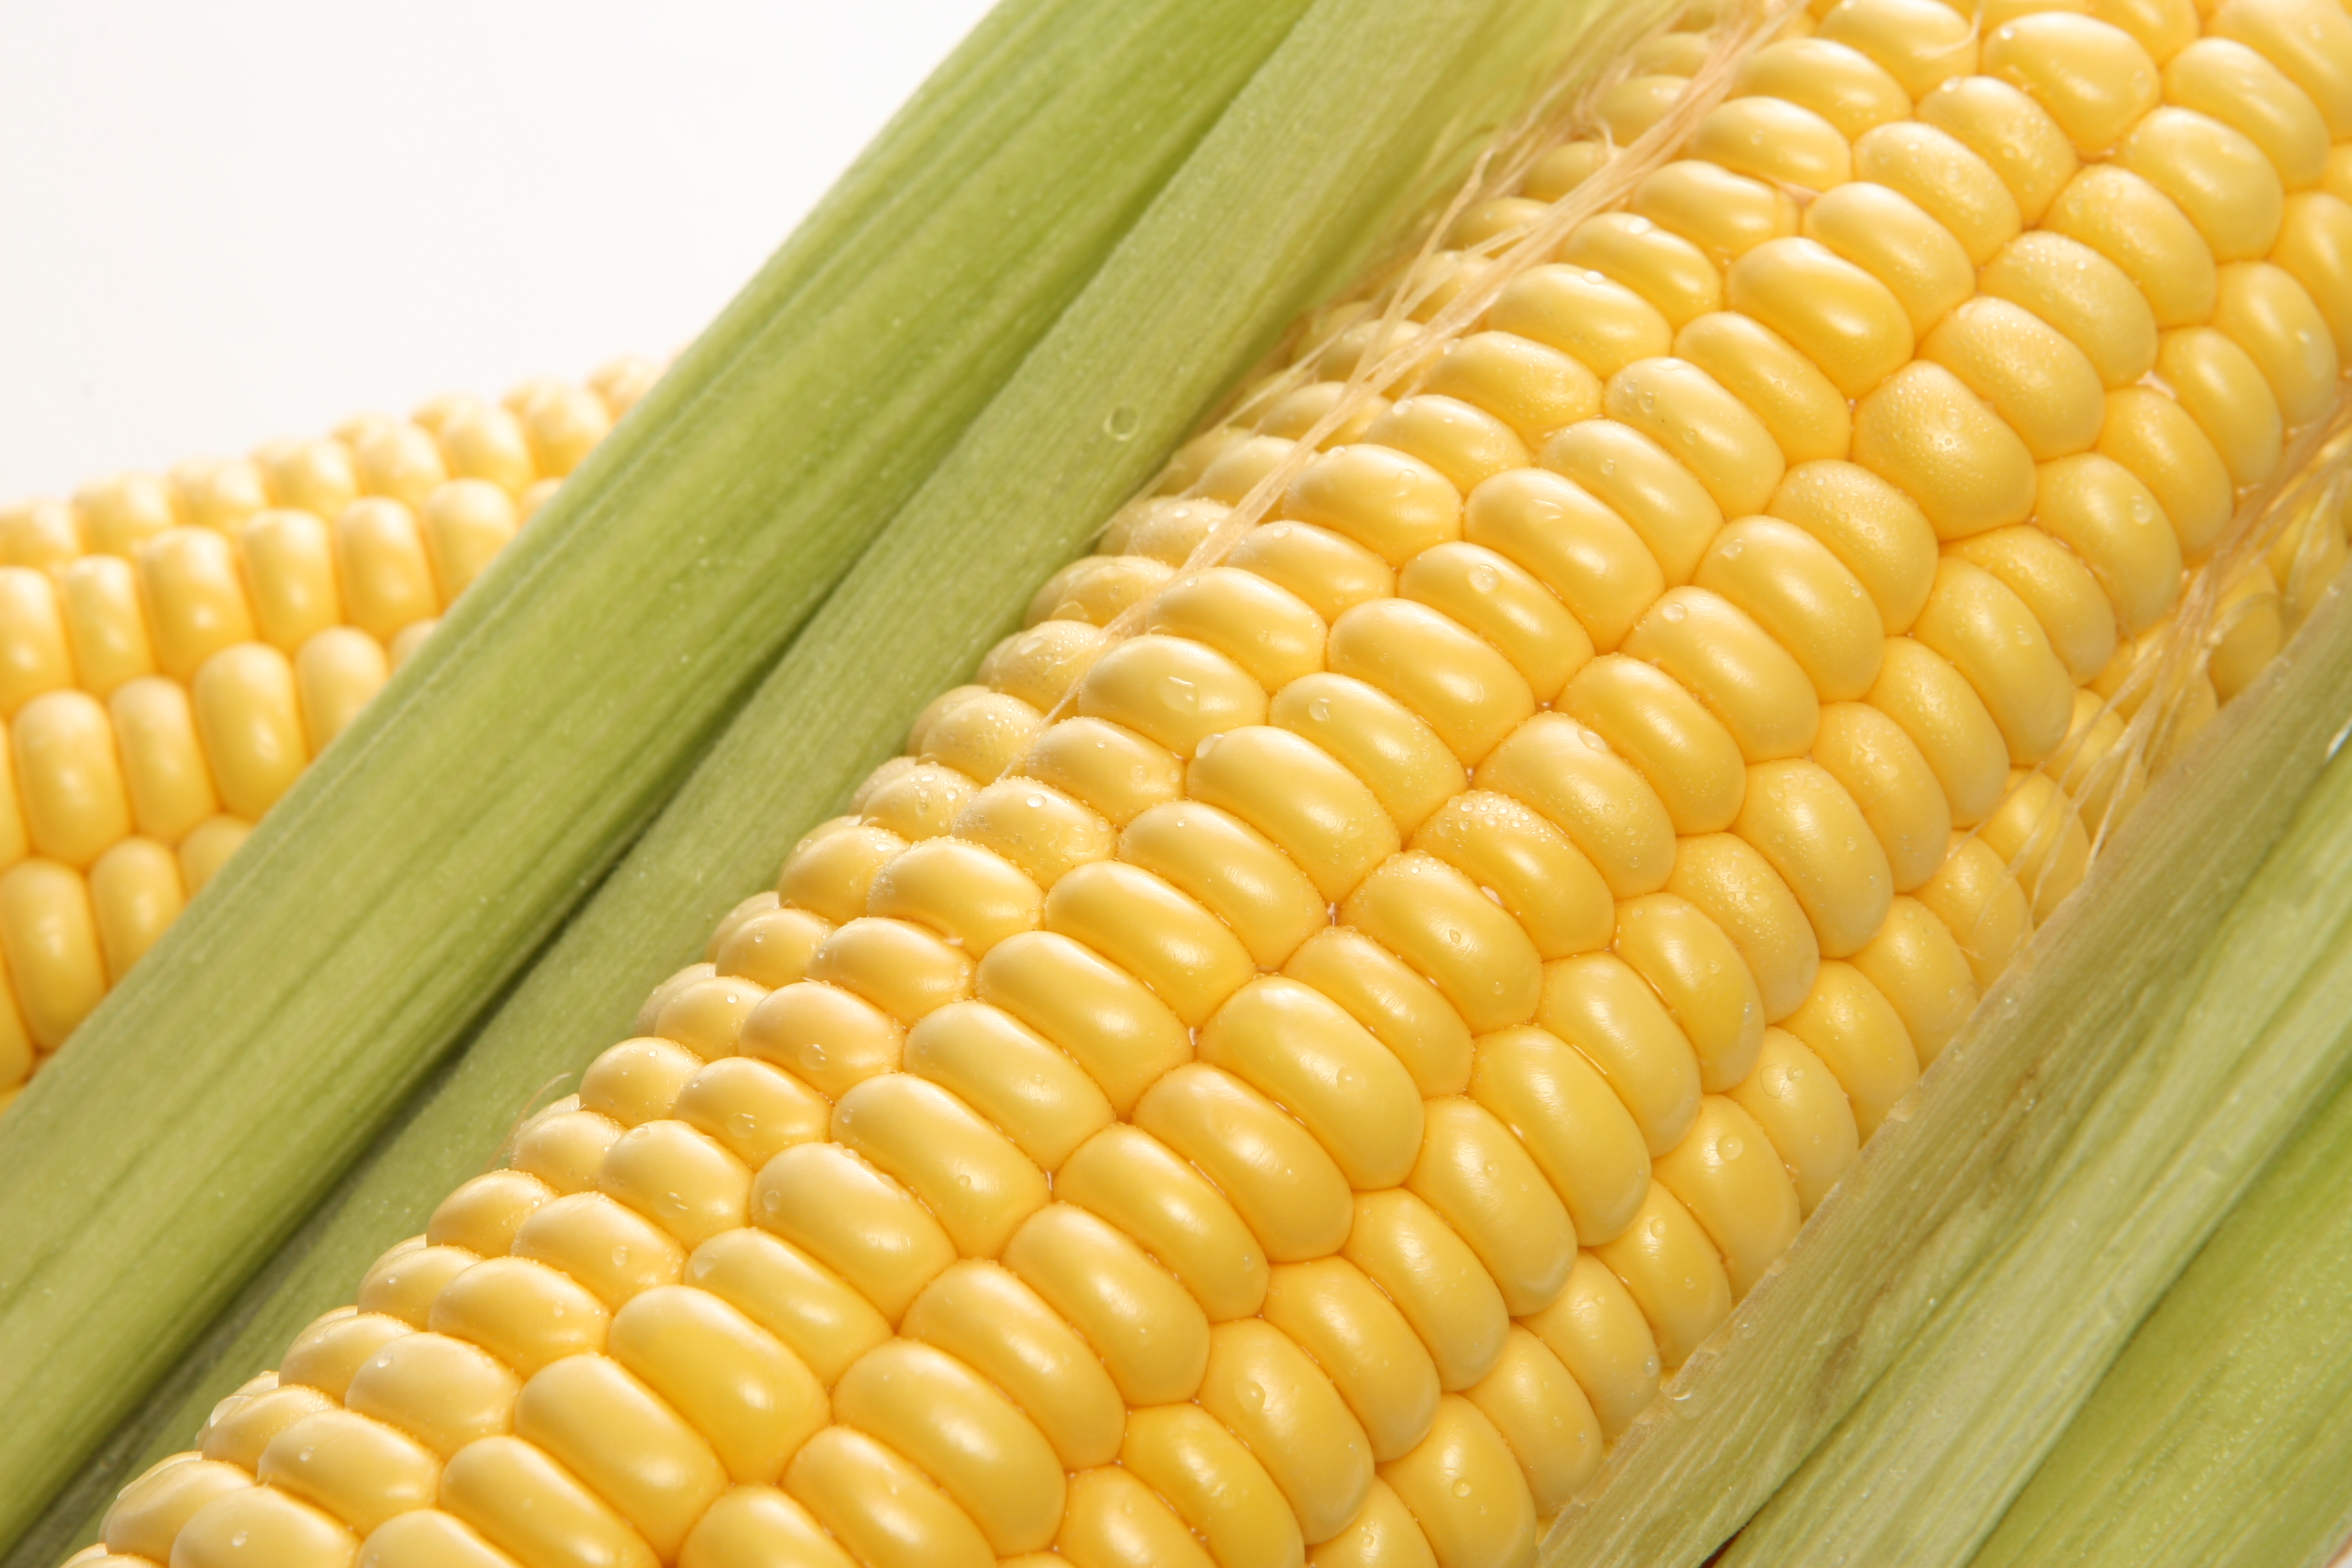 maize buddhist personals Guide to weekend getaways from karu (maize) one can see corns a buddhist pilgrimage for happiness by roli jain.